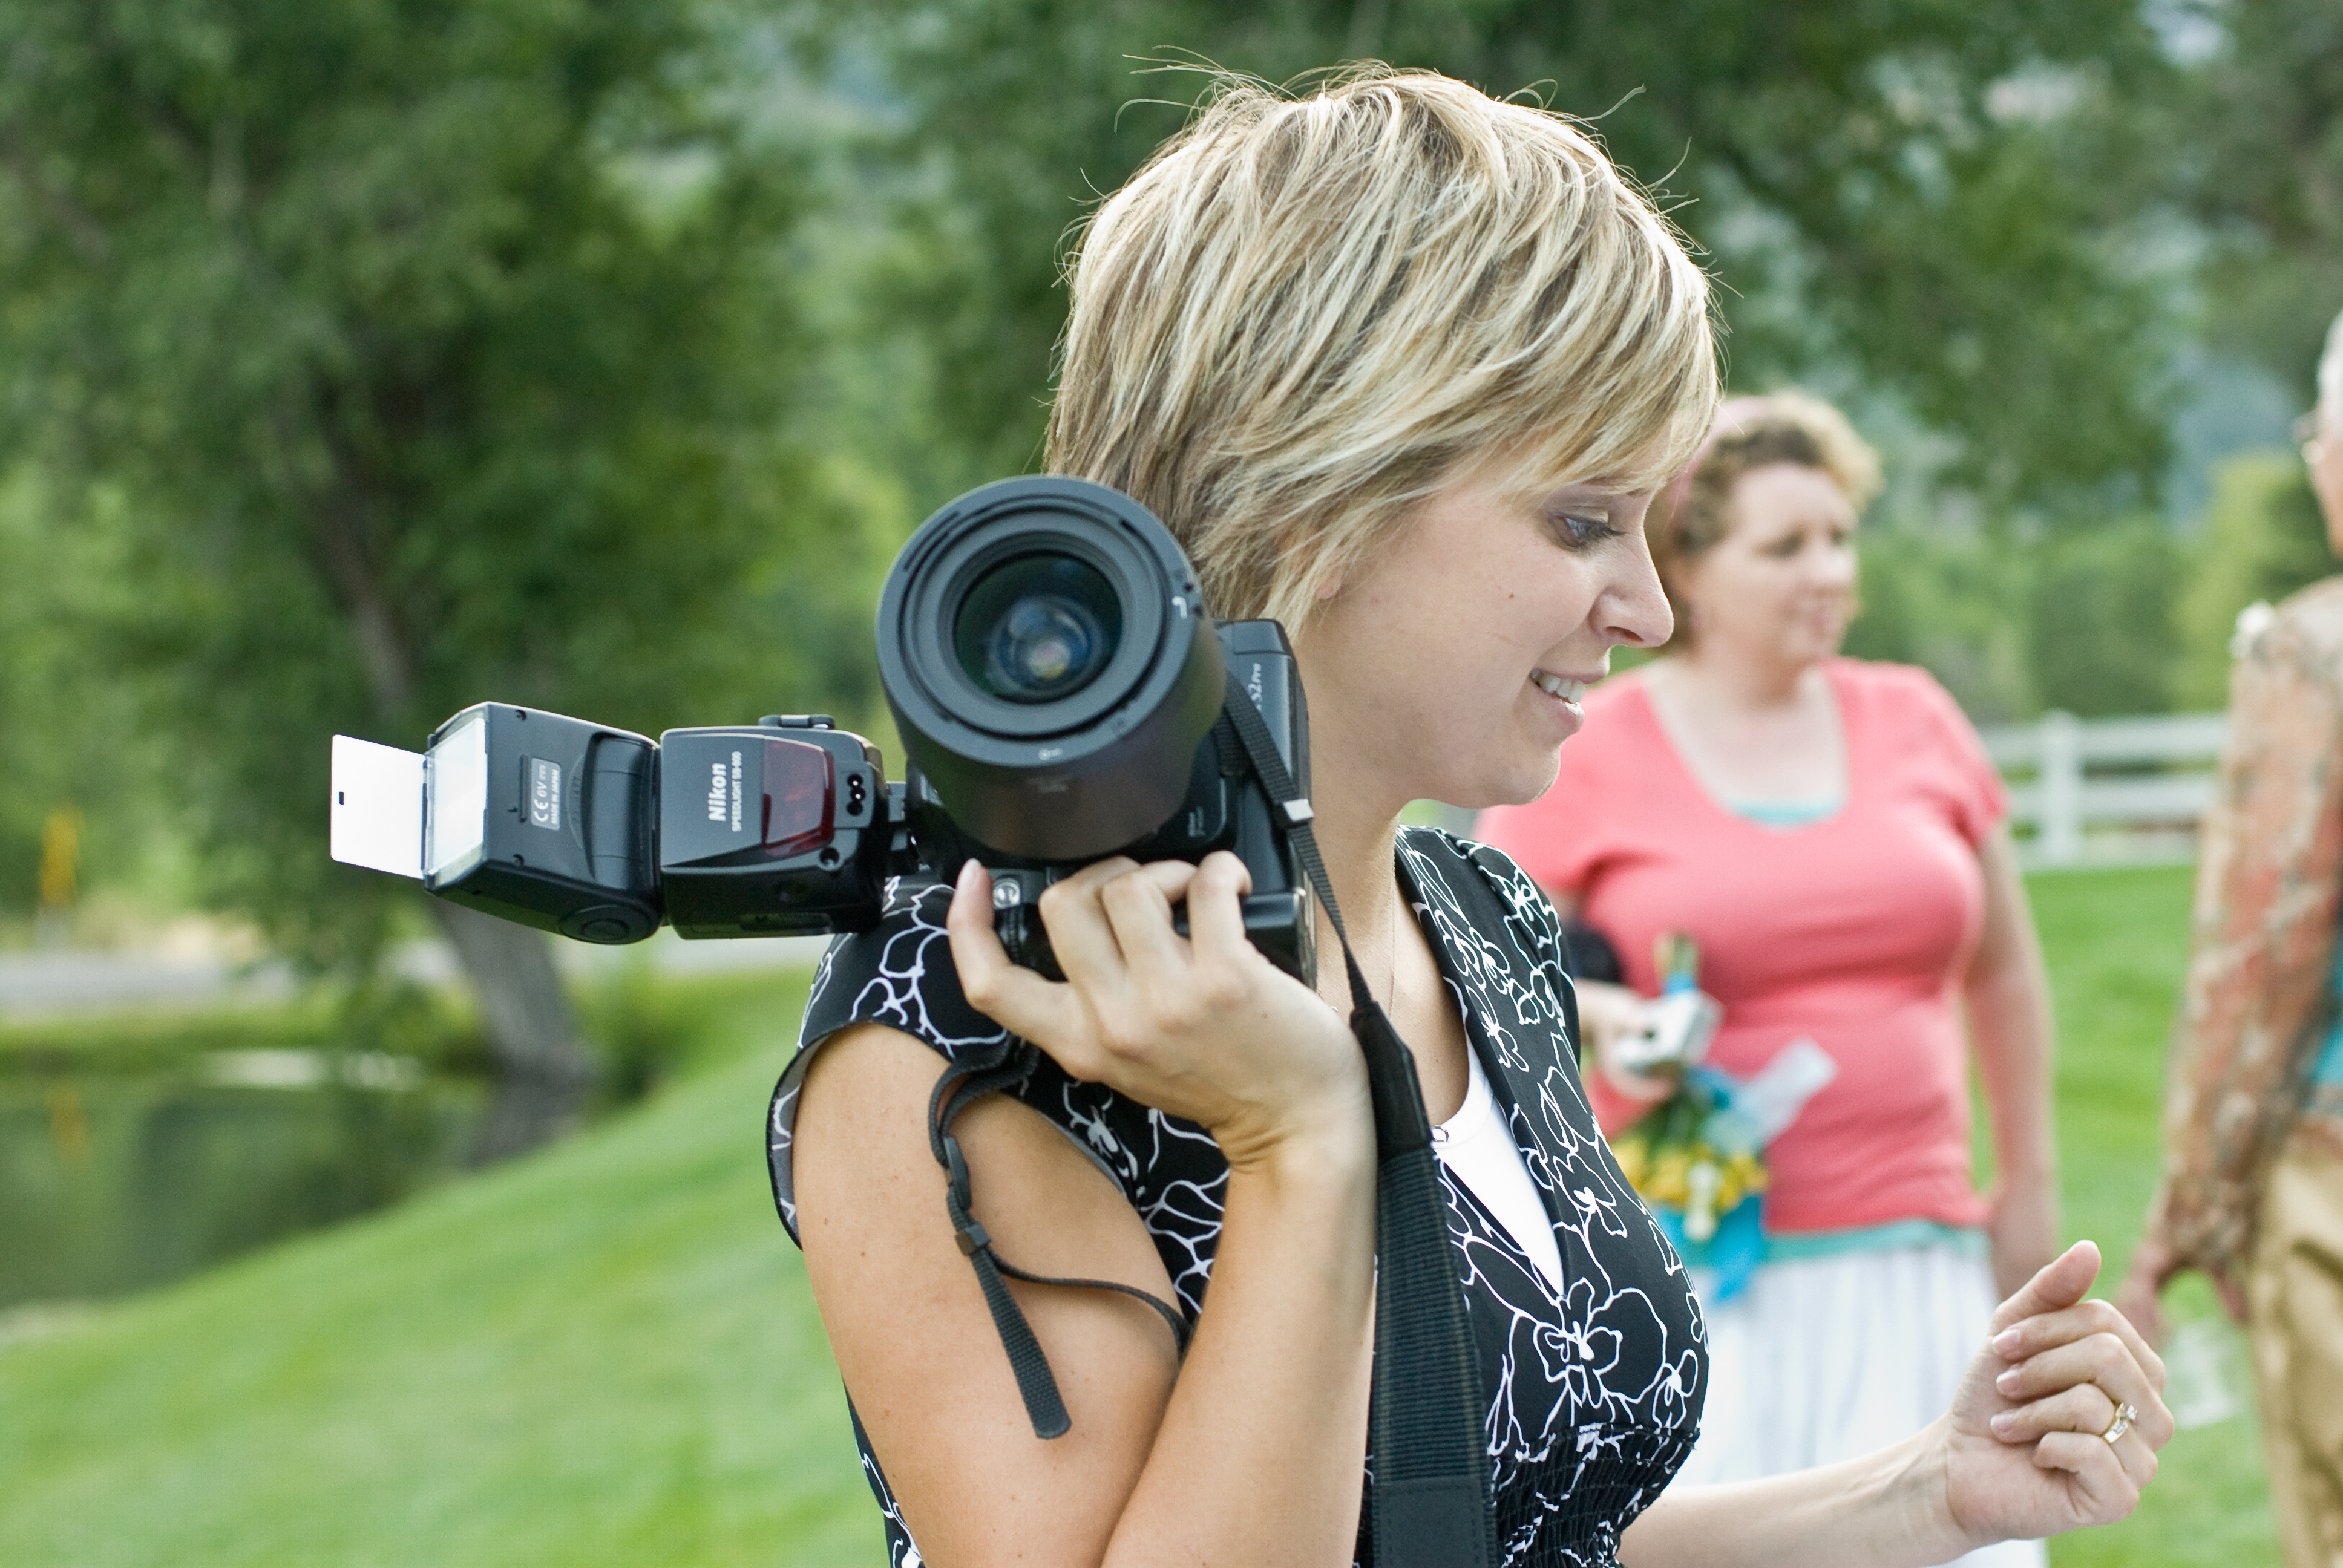 Wedding Photography Videography Price - Crayons Creations How to price a photography shoot